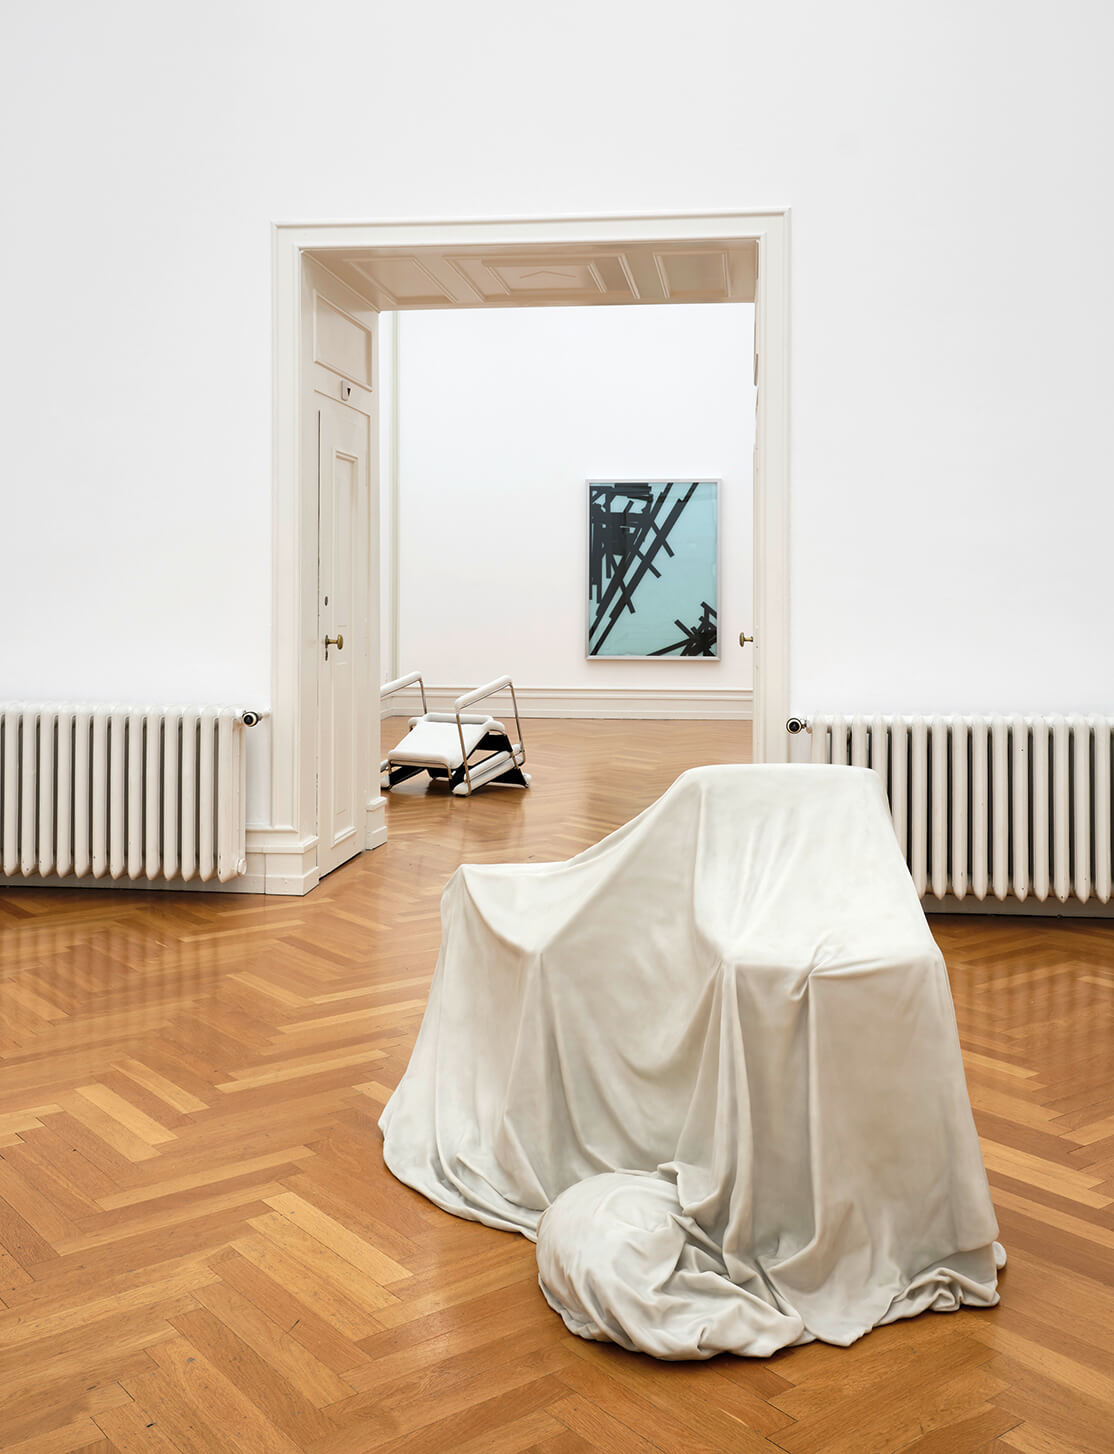 Exhibition By Ryan Gander Opens At Kunsthalle Bern News Lisson